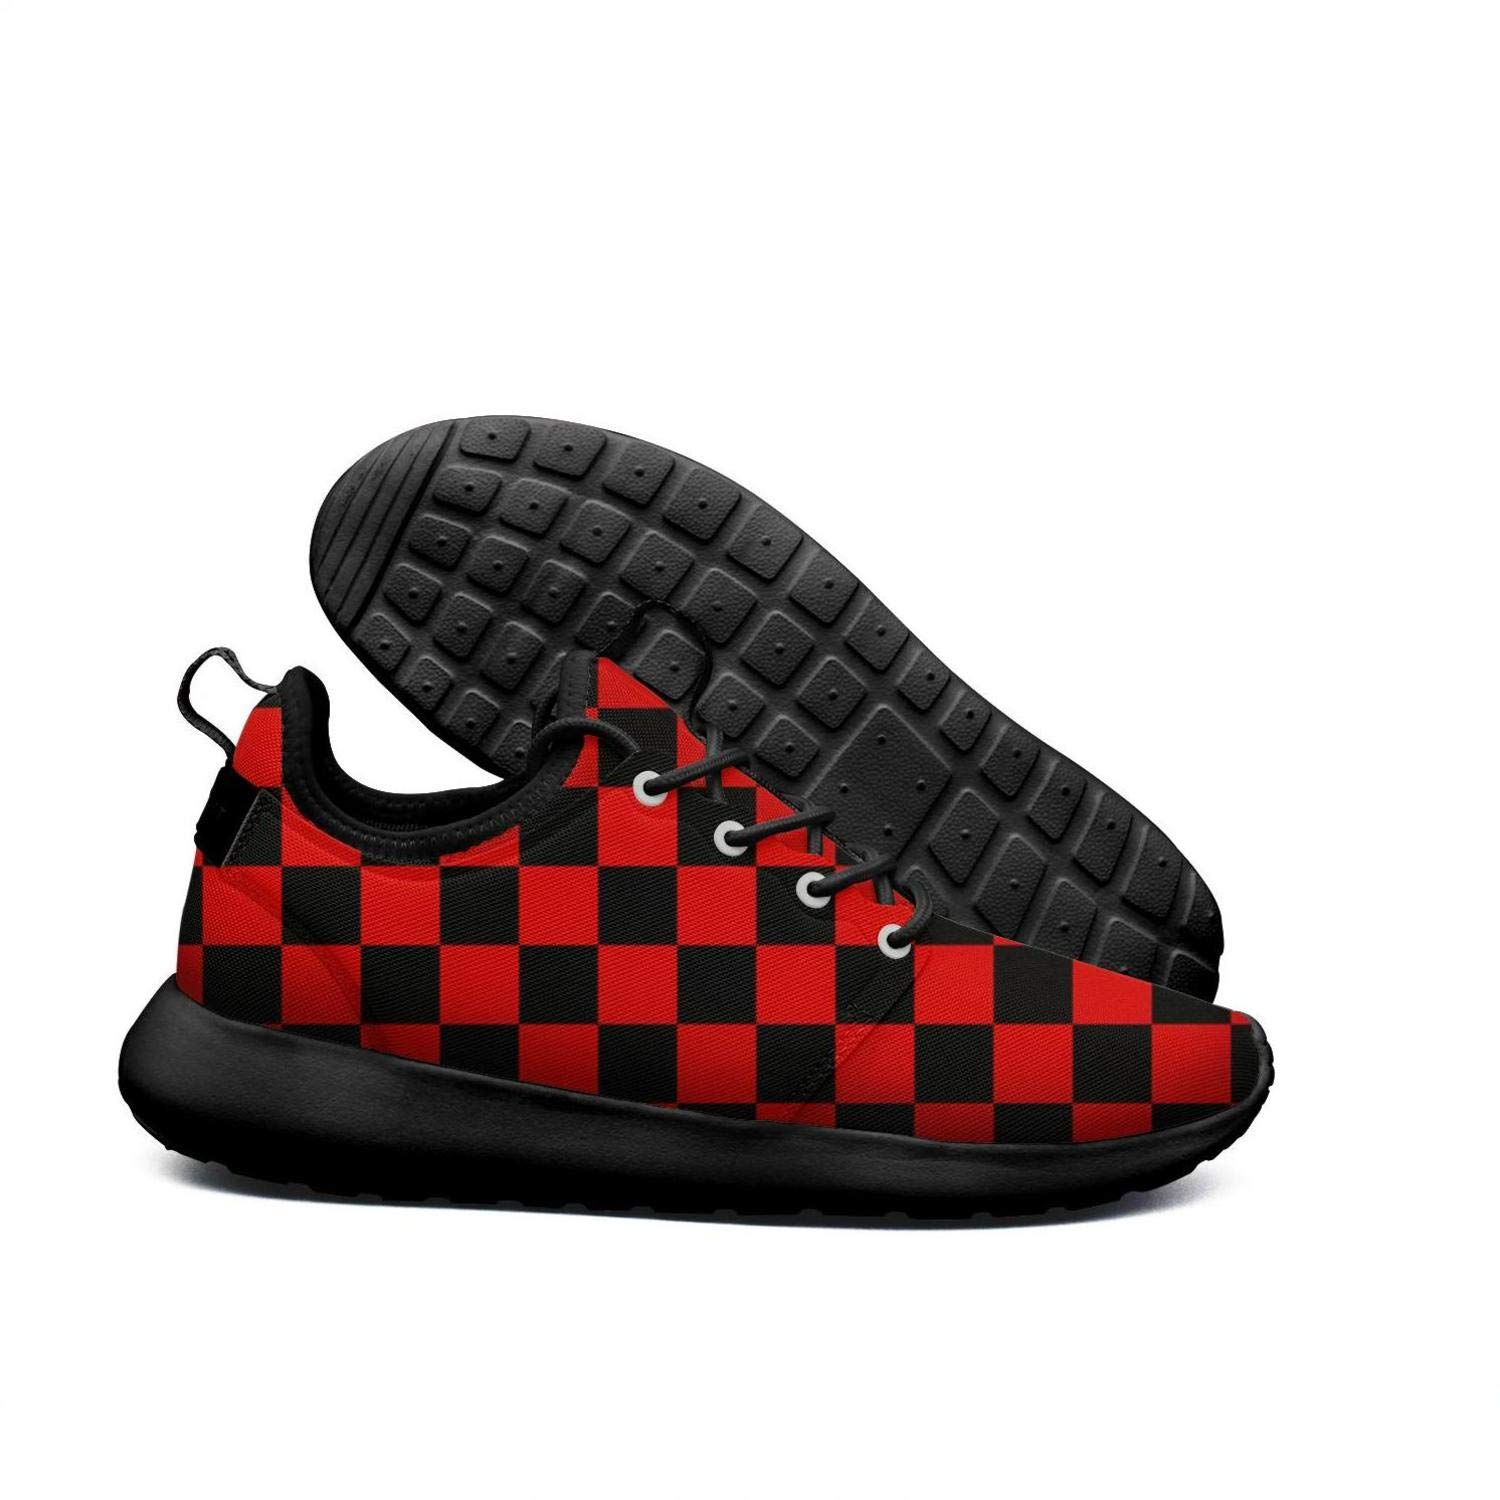 633c277bfcdac Amazon.com : xcvrf4i Black red Checkered Squares Checker Fashion ...